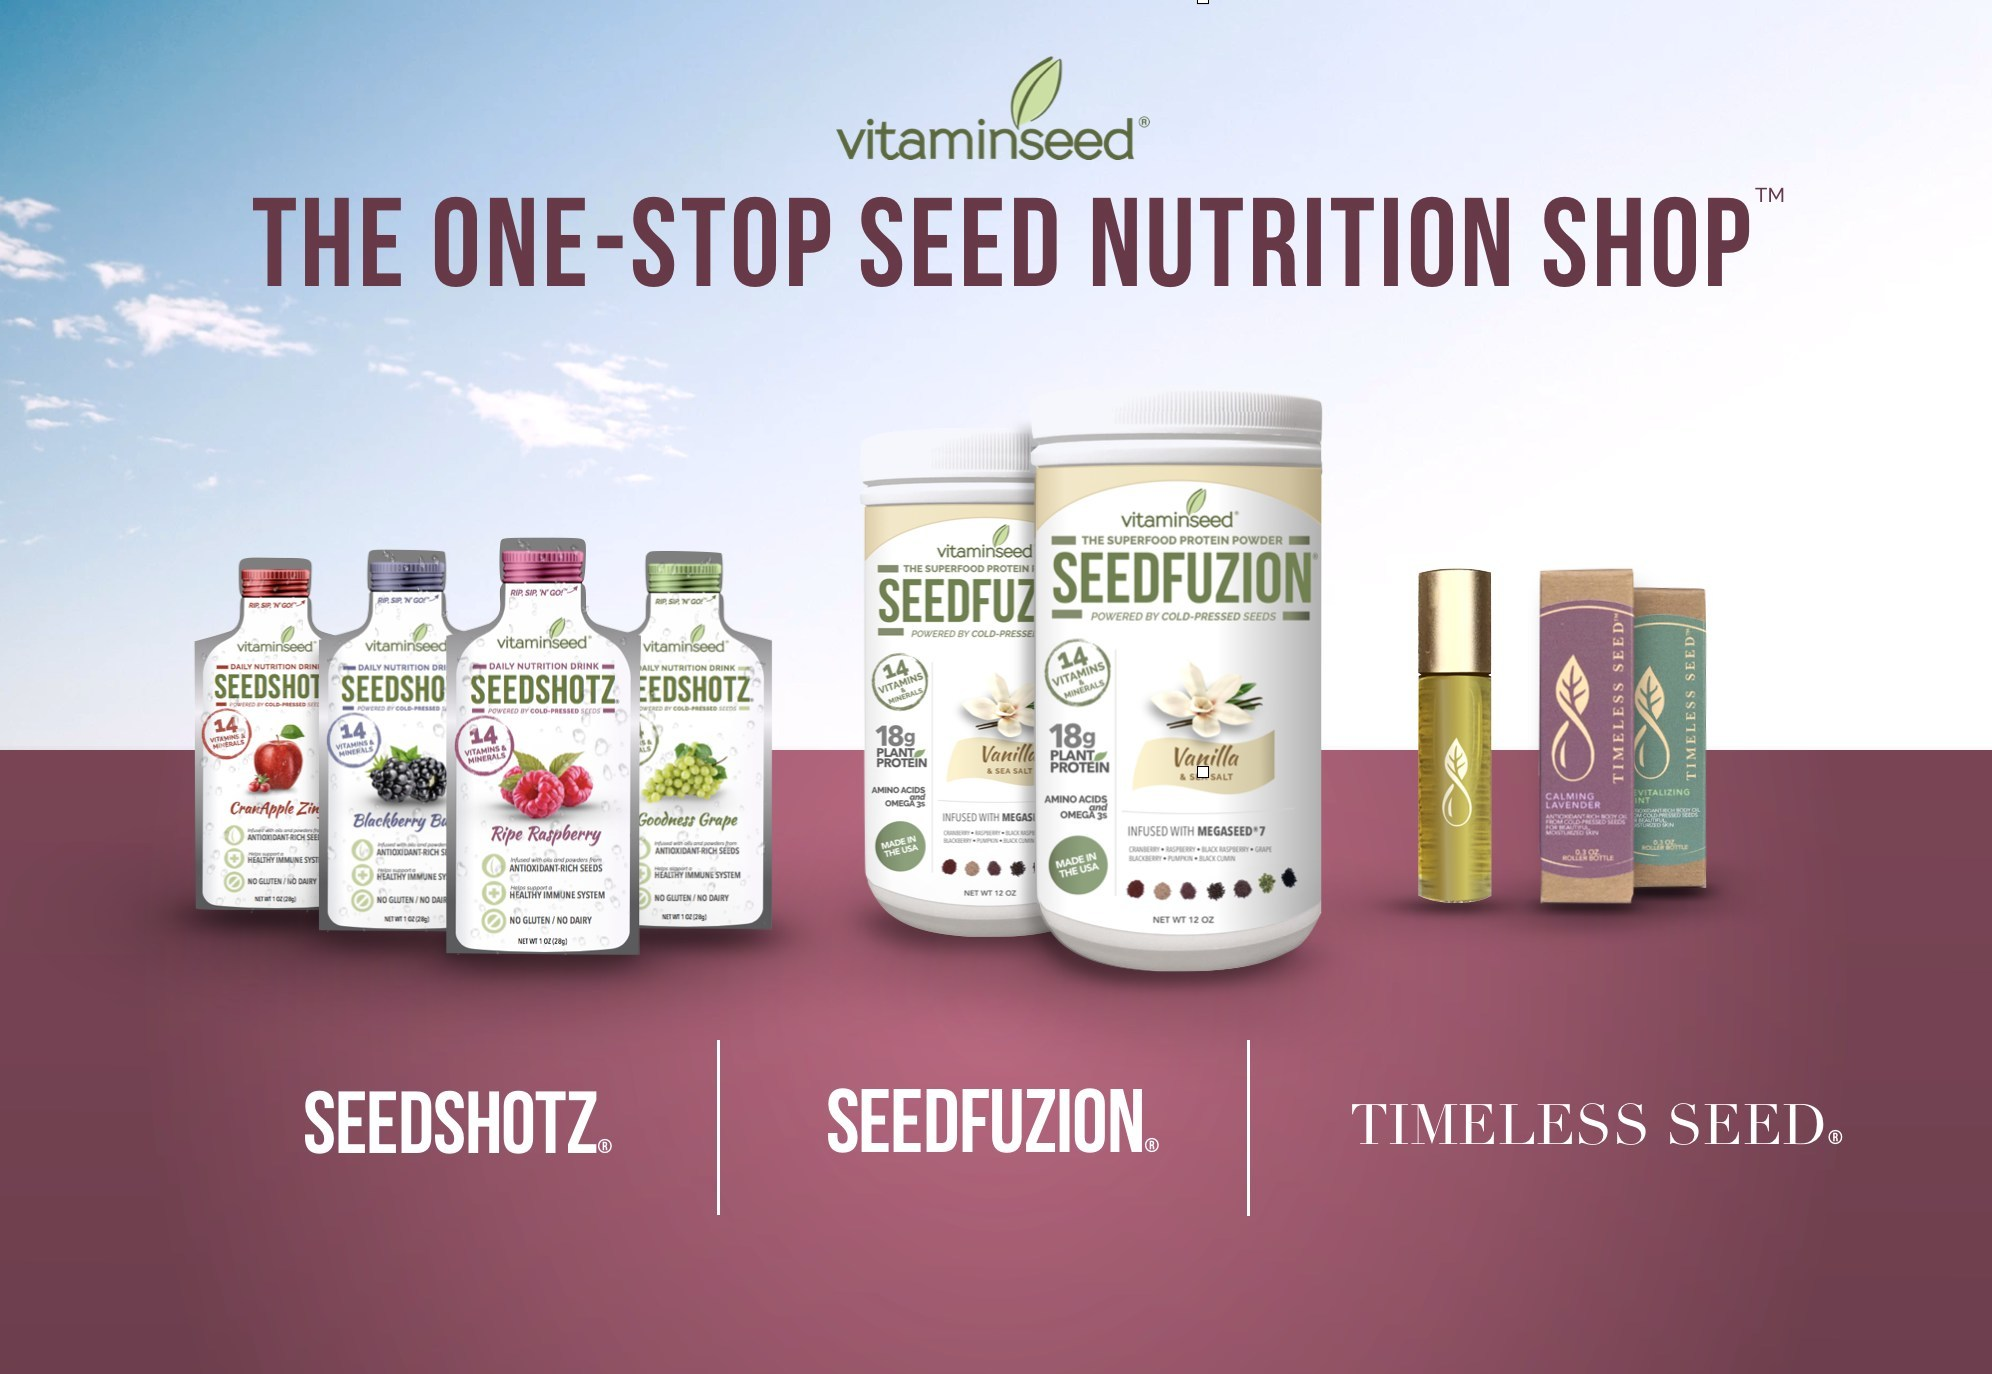 Vitaminseed Introduces One Stop Seed Nutrition Shop